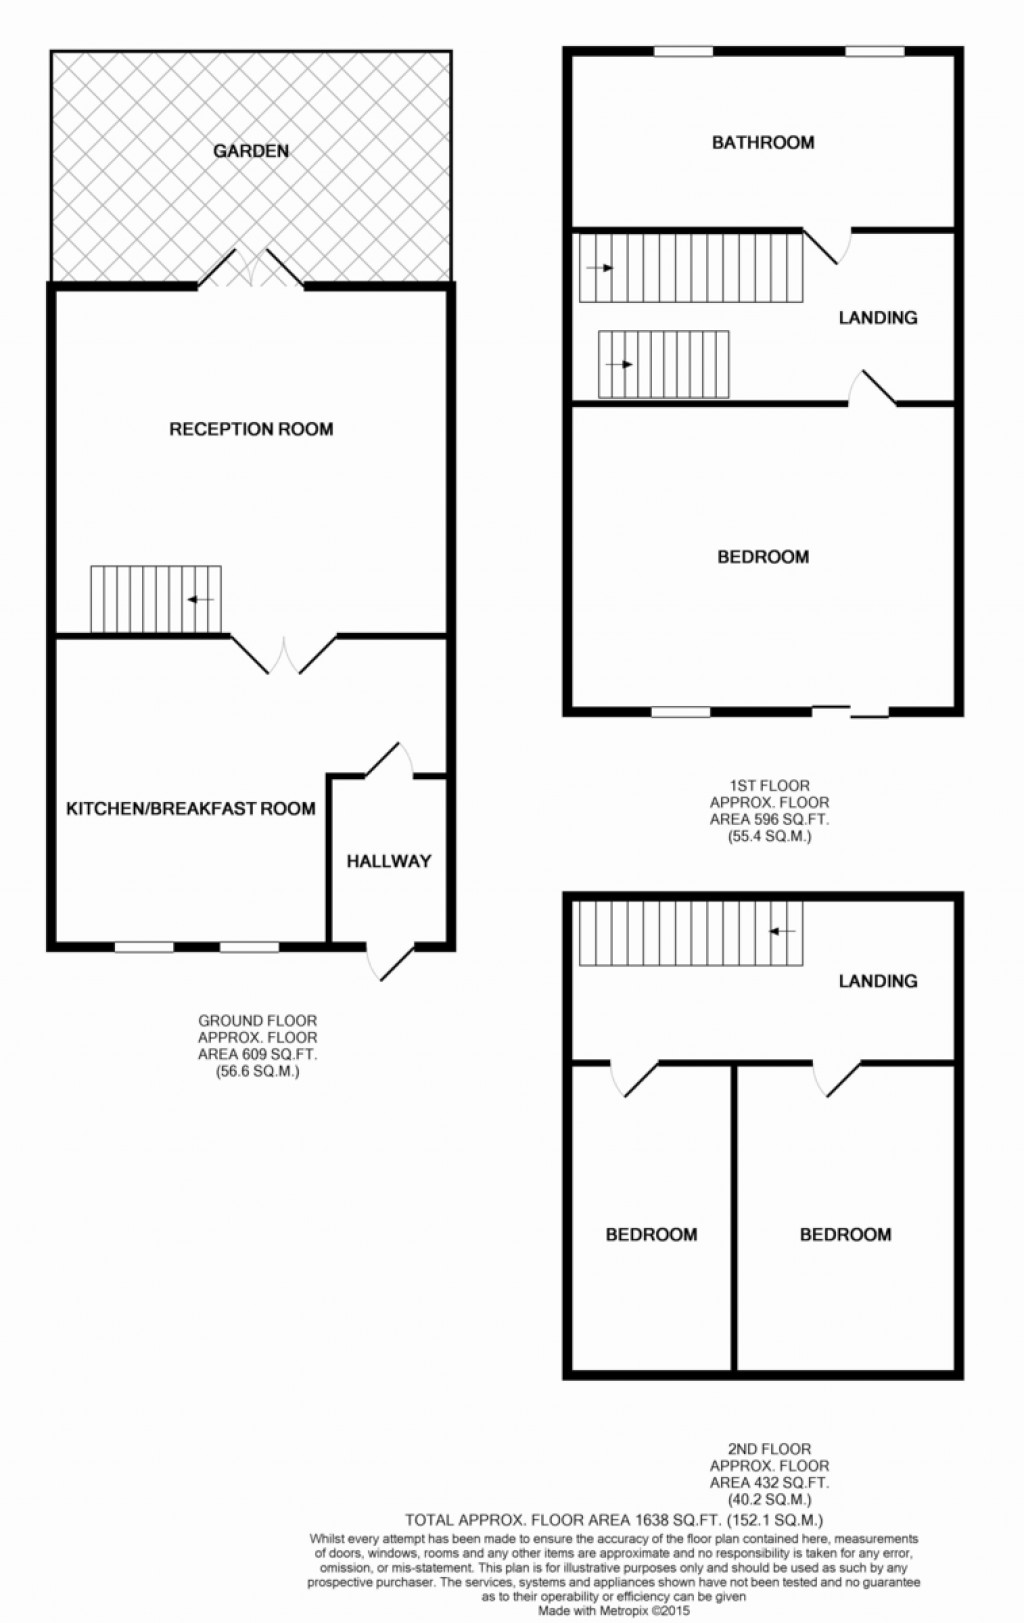 Floorplans For Atlas Mews, Islington